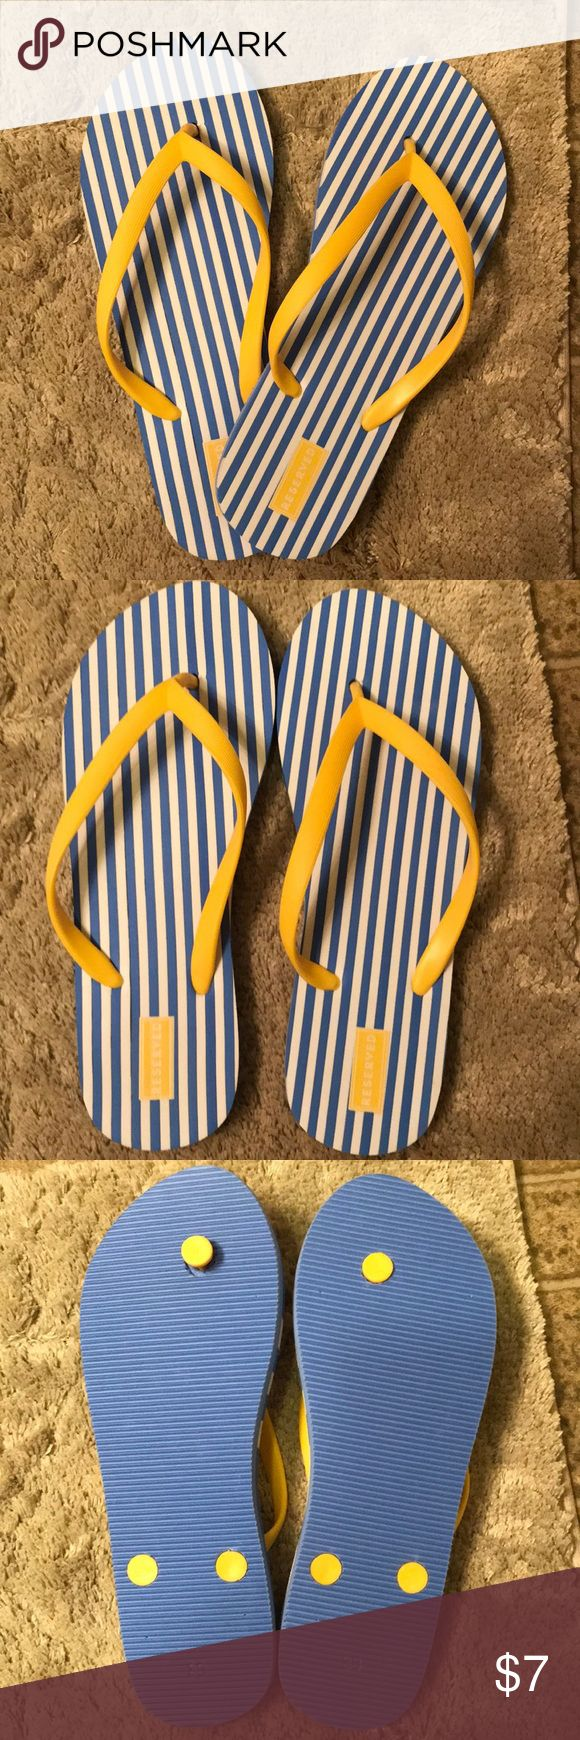 Reserved striped flip flops Blue and white striped flip flops with yellow straps. Size 8 US. Never worn and in perfect condition. Perfect for summer! Reserved Shoes Sandals